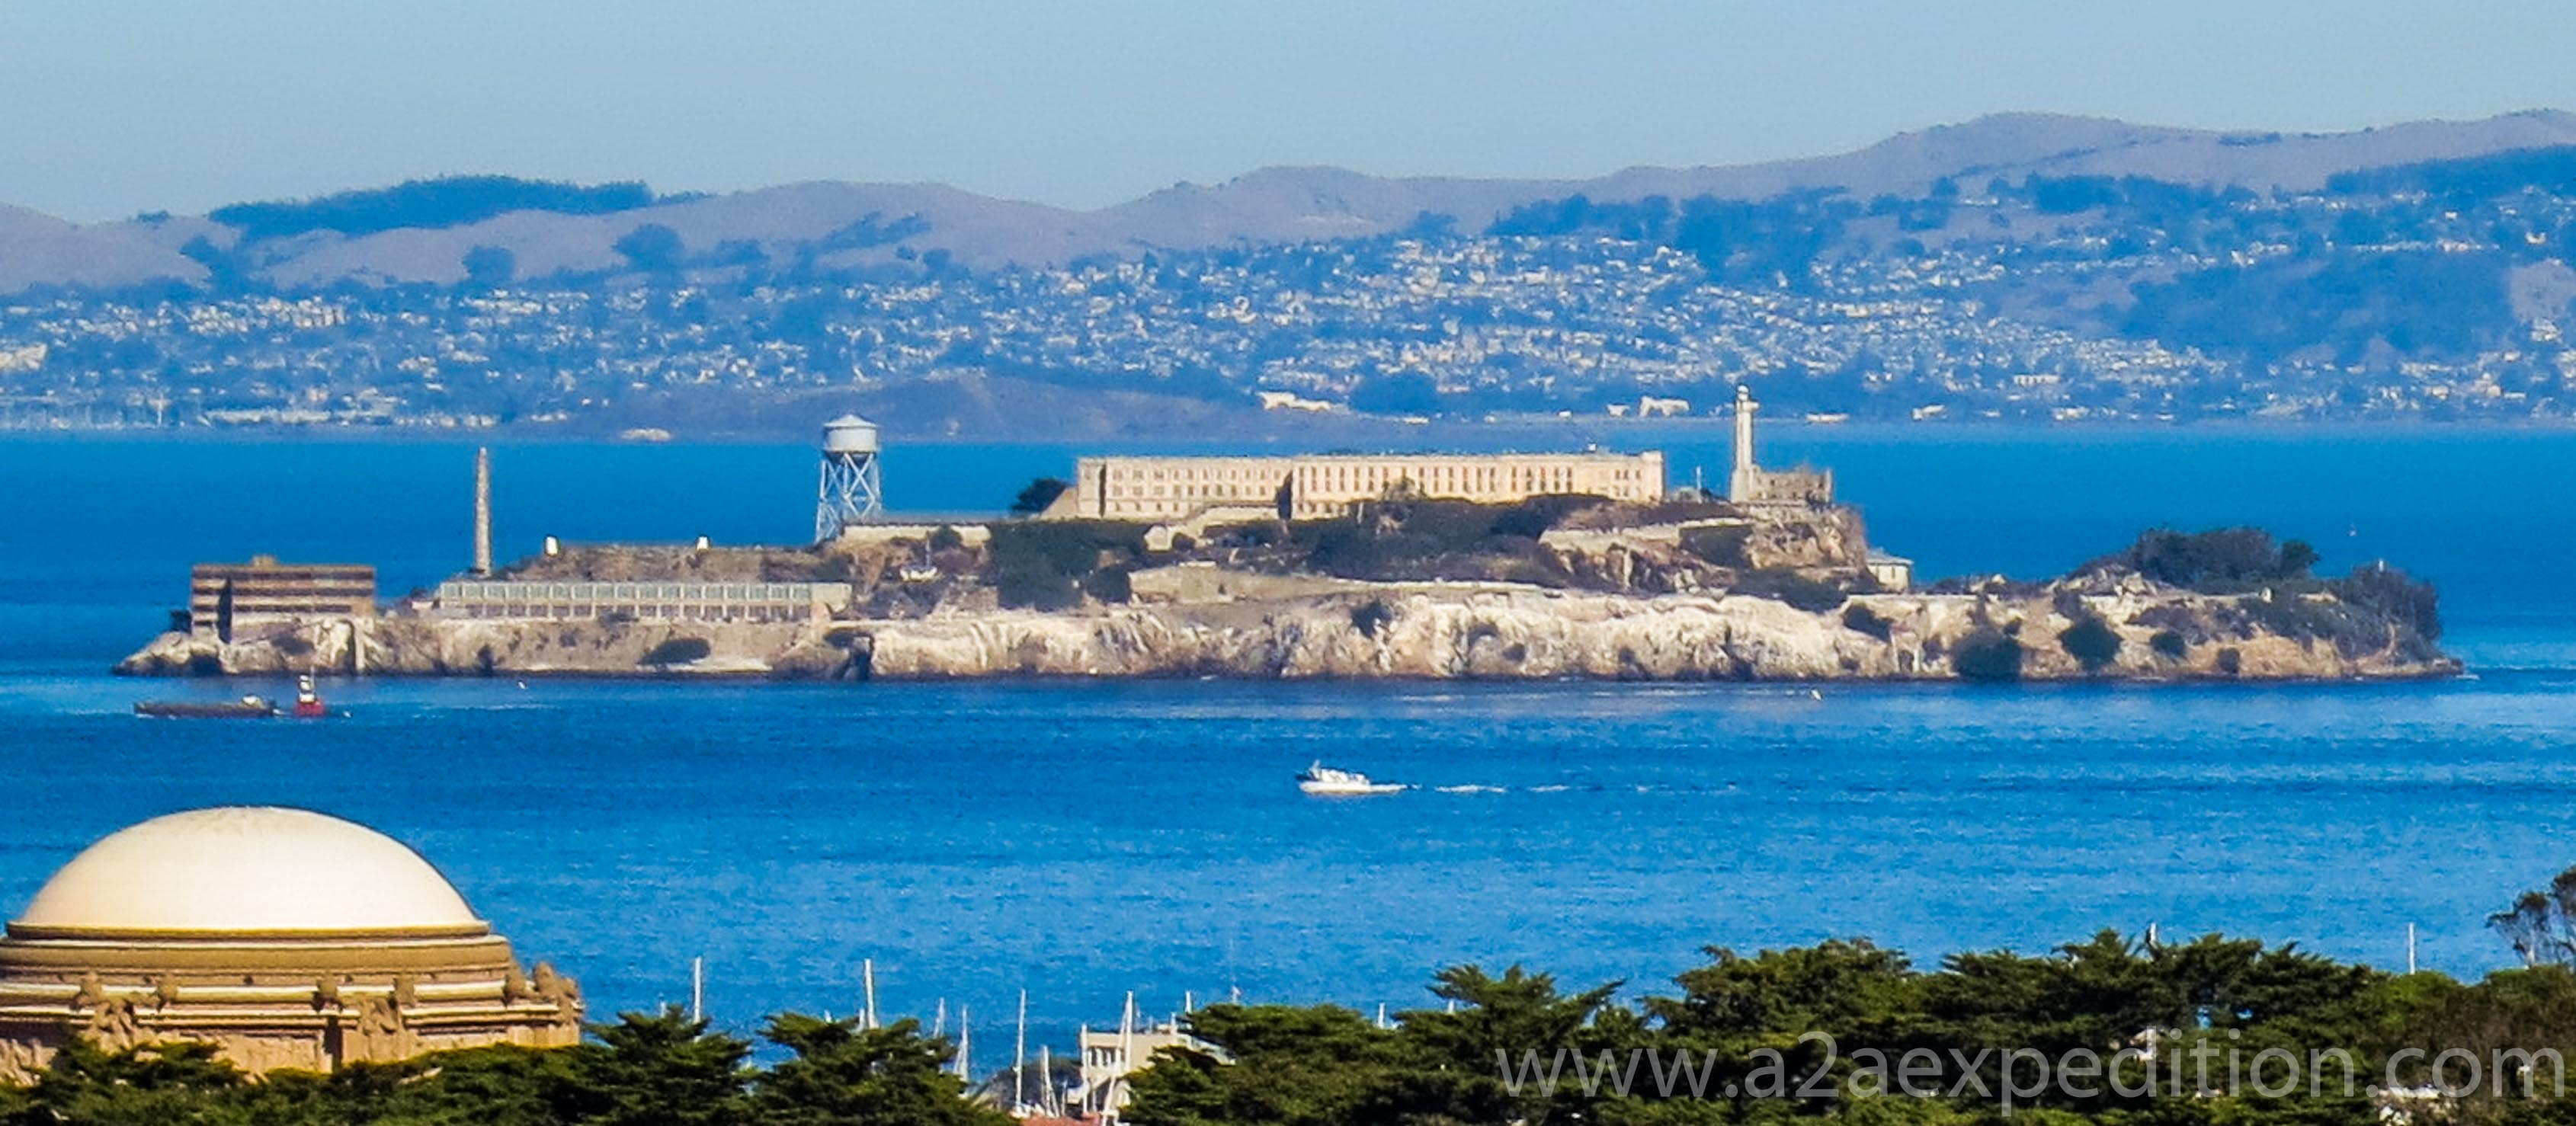 Alcatraz, A2A Expedition